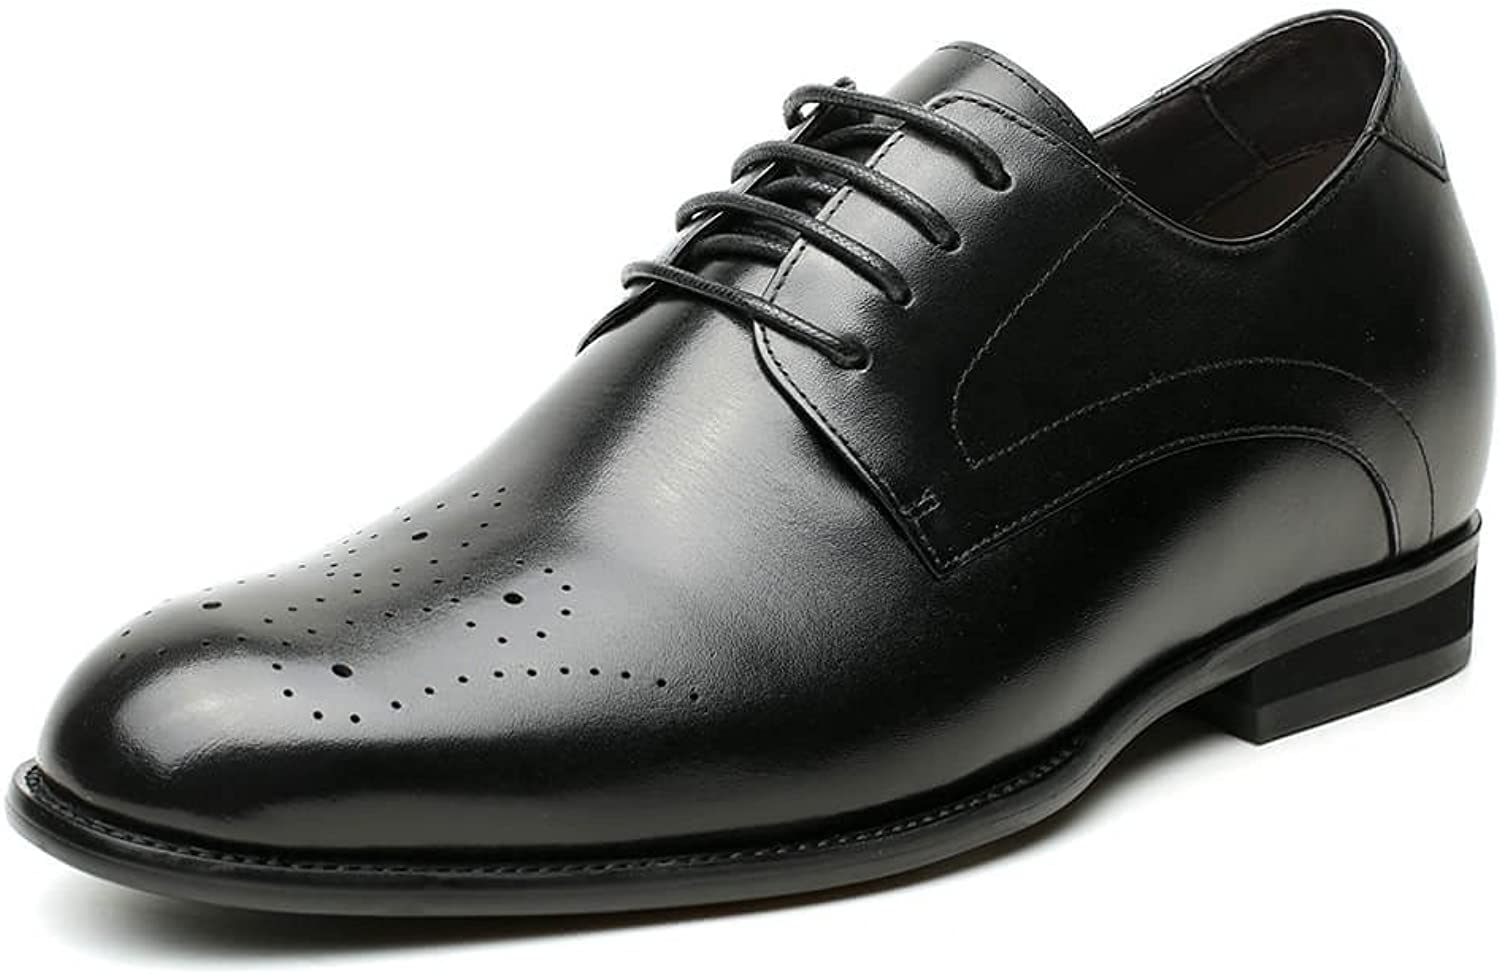 CHAMARIPA Men's Elevator Oxford Dress shoes Cow Leather Taller Men shoes Black Wedding,Party- 2.76 Inches Height Increasing H81D37K025D